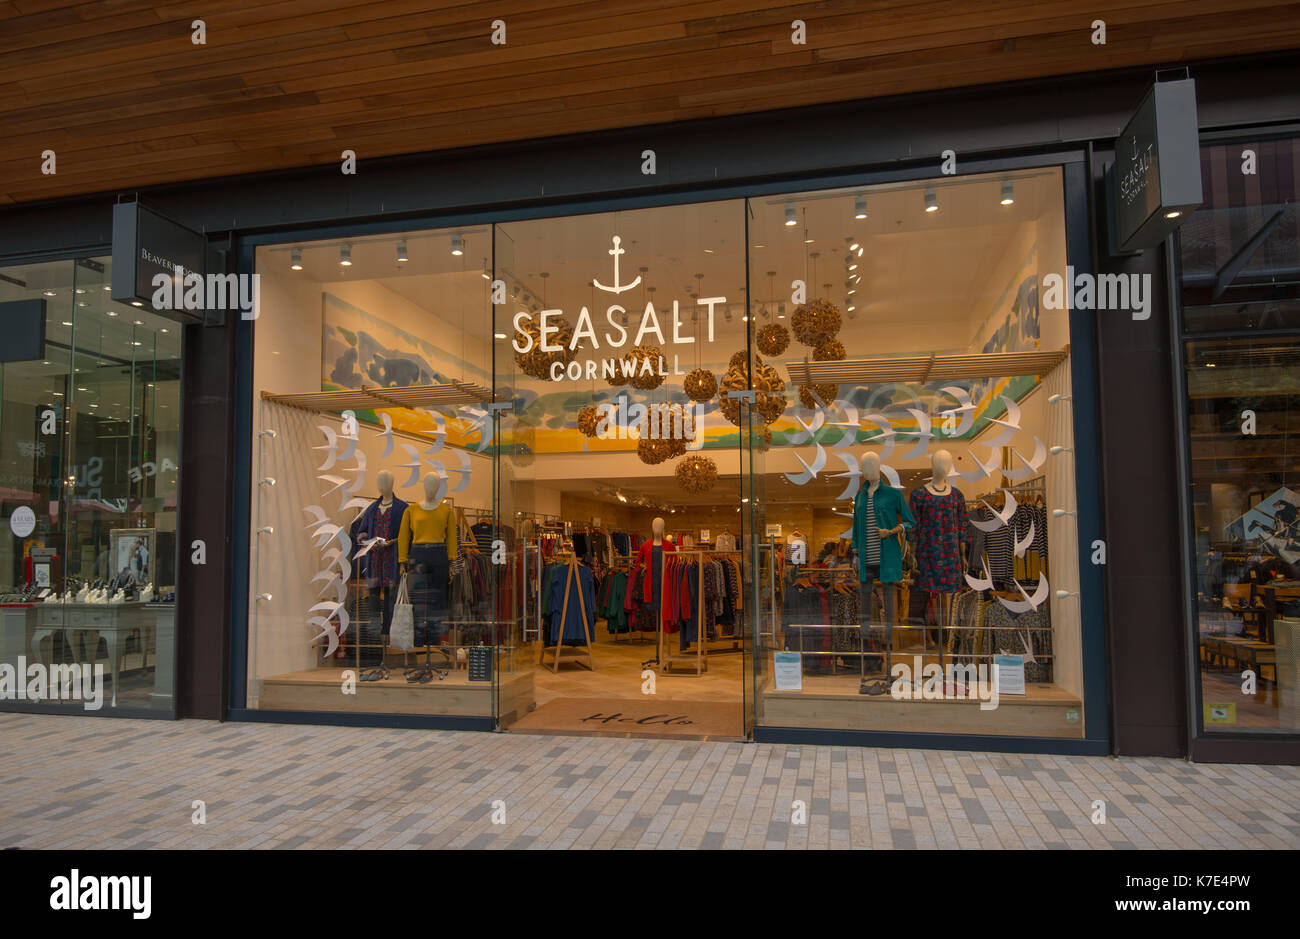 Seasalt Cornwall retail store in Bracknell town centre. Berkshire, UK. - Stock Image